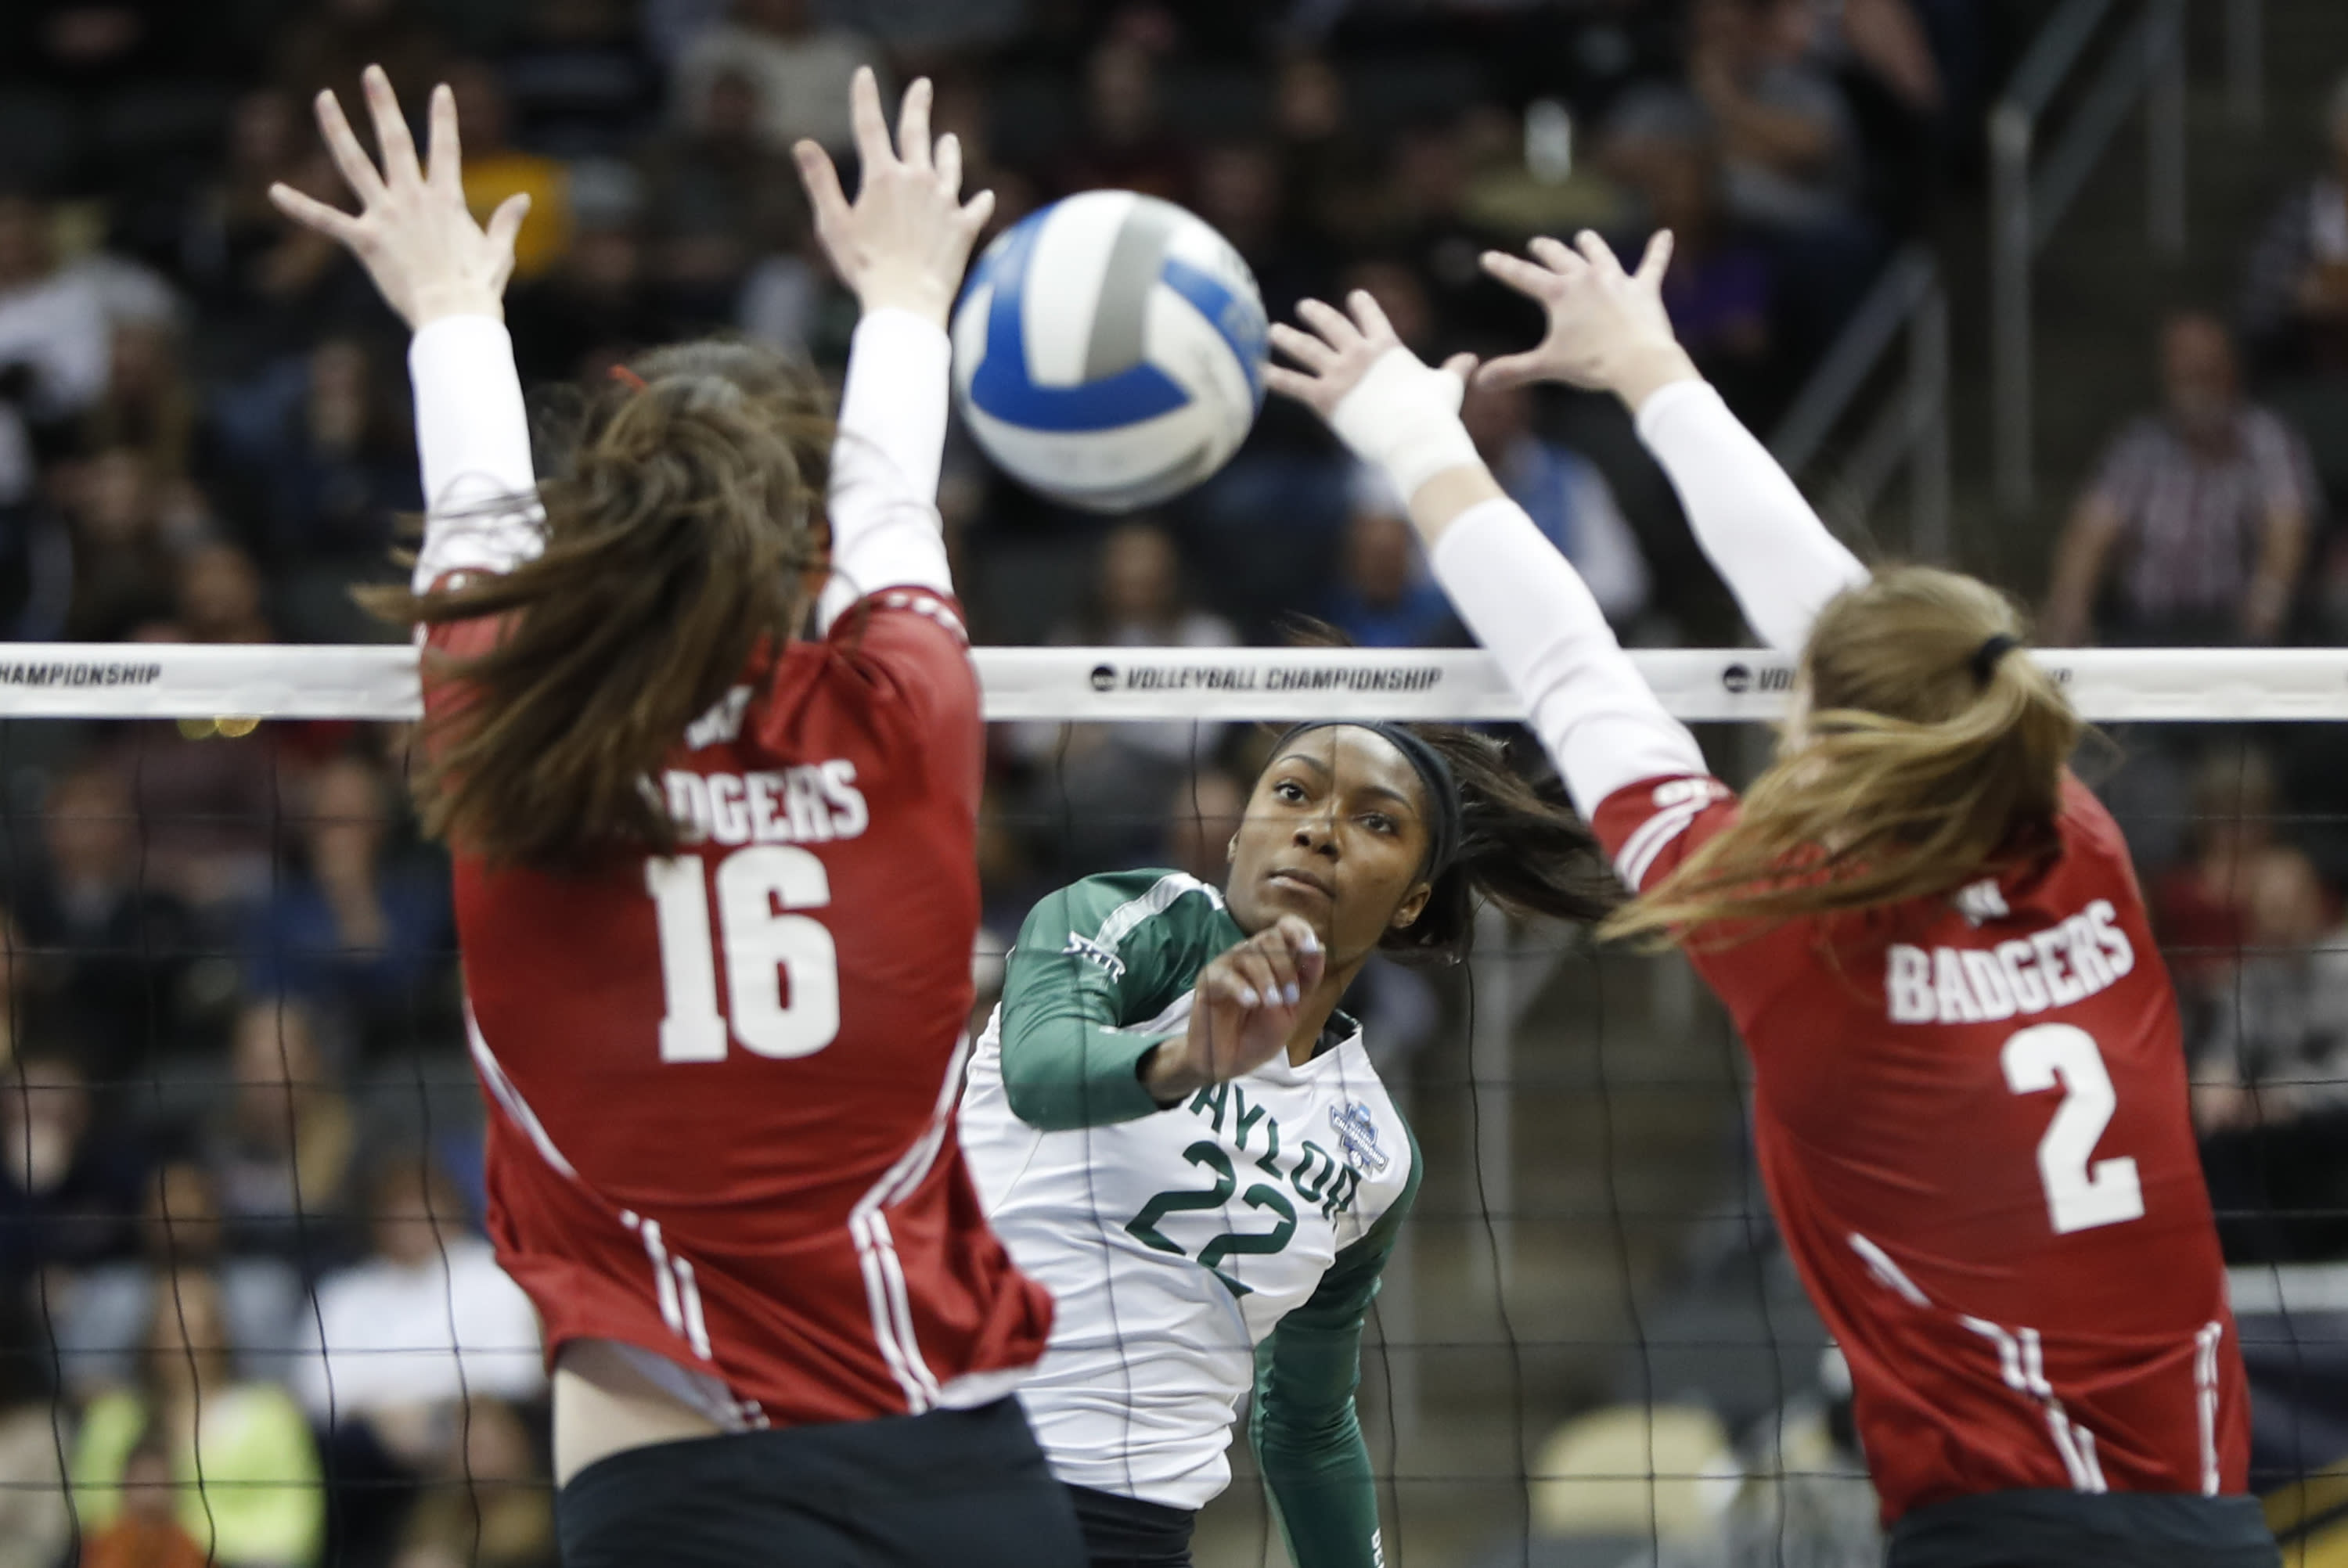 Badgers Volleyball beat Baylor, advances to National Championship Game